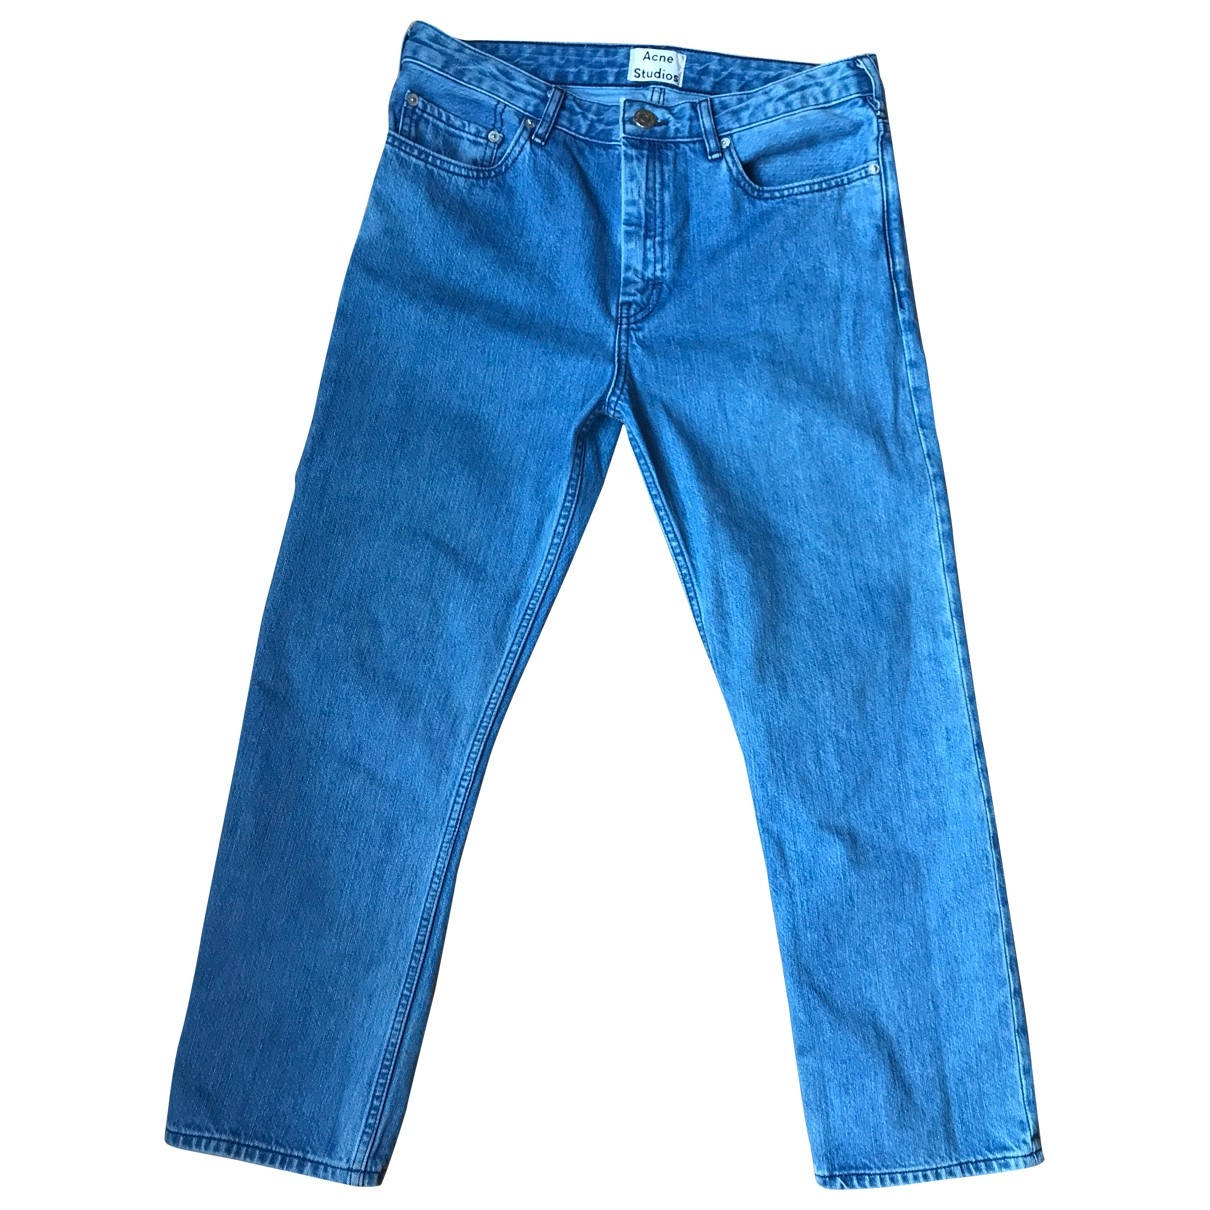 Acne Studios \N Blue Denim - Jeans Trousers for Women 34 FR